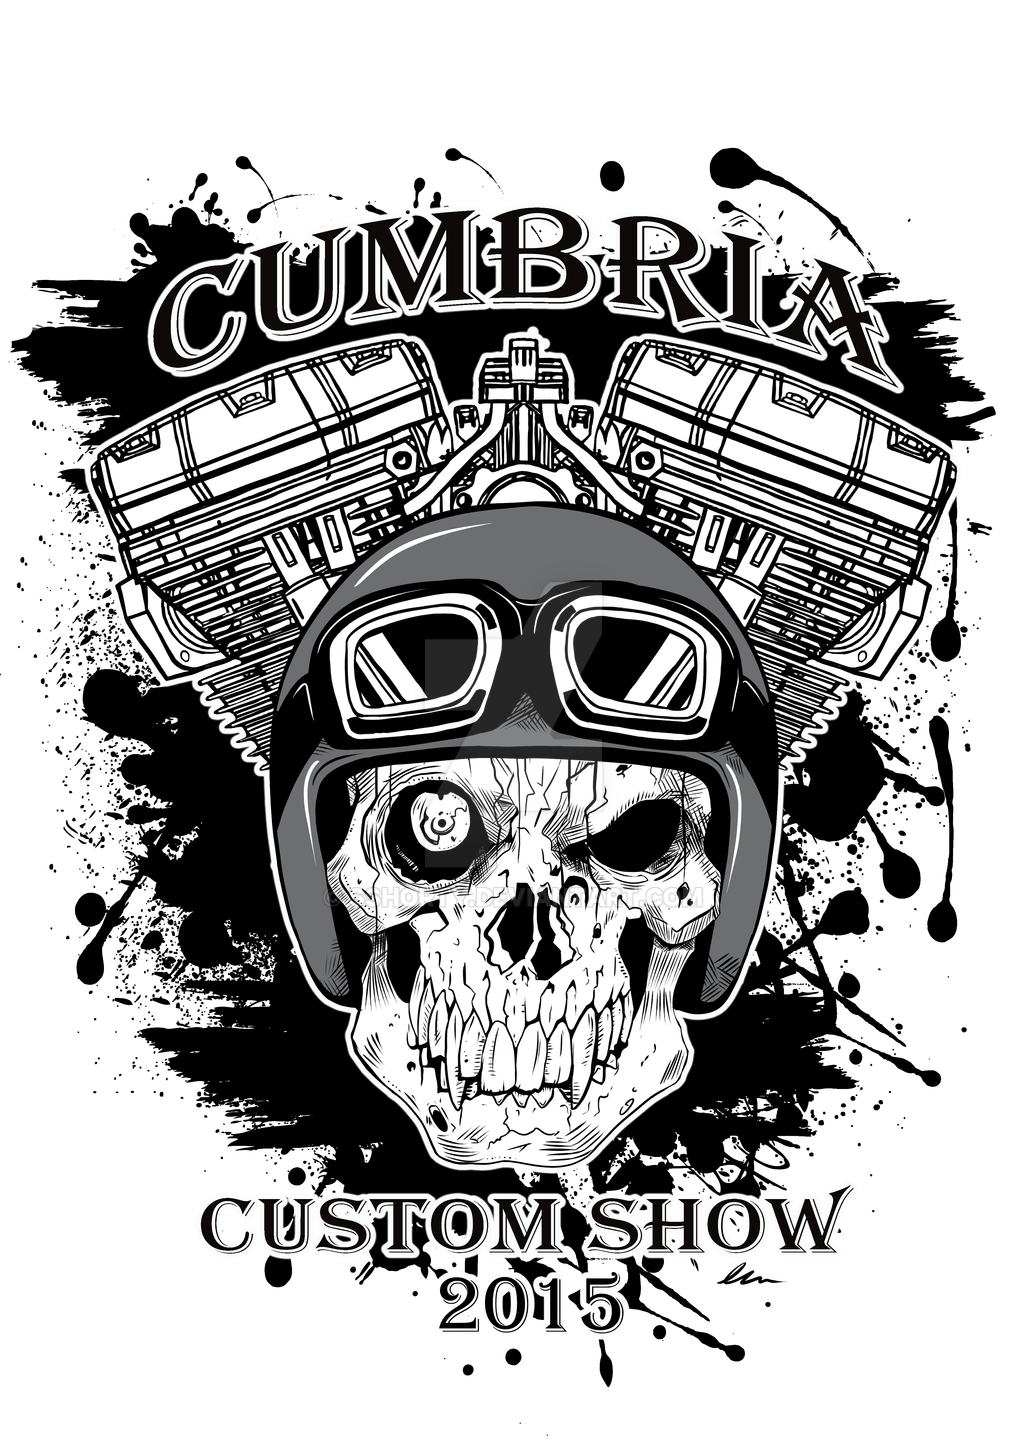 cumbria custom bike show t shirt design 2015 by sshorty on